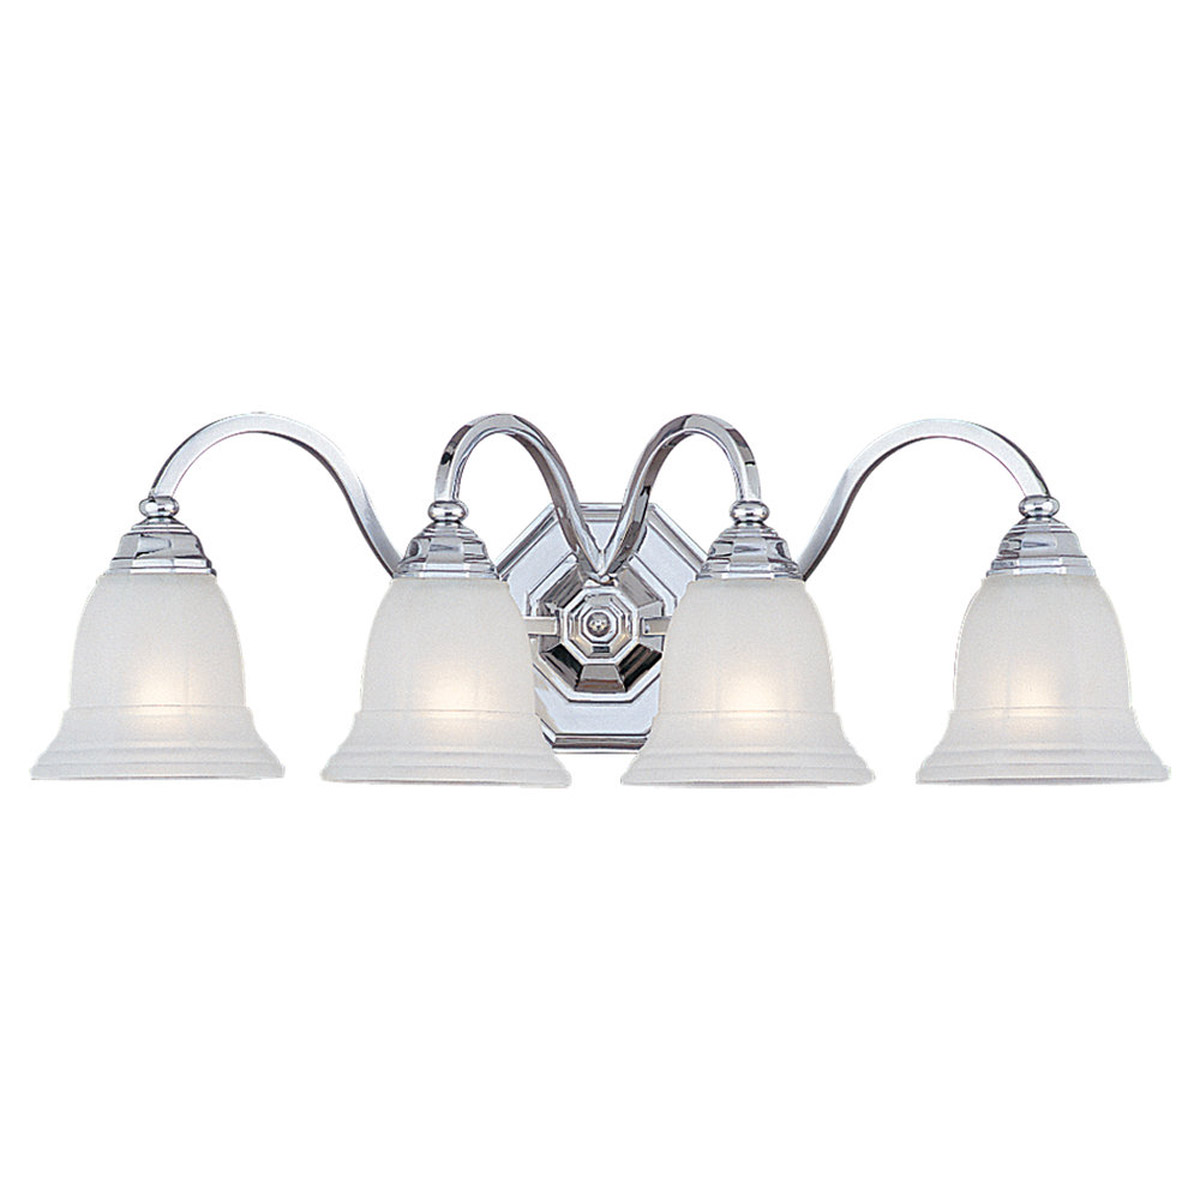 Sea Gull Lighting Blakely 4 Light Bath Vanity in Chrome 4060-05 photo